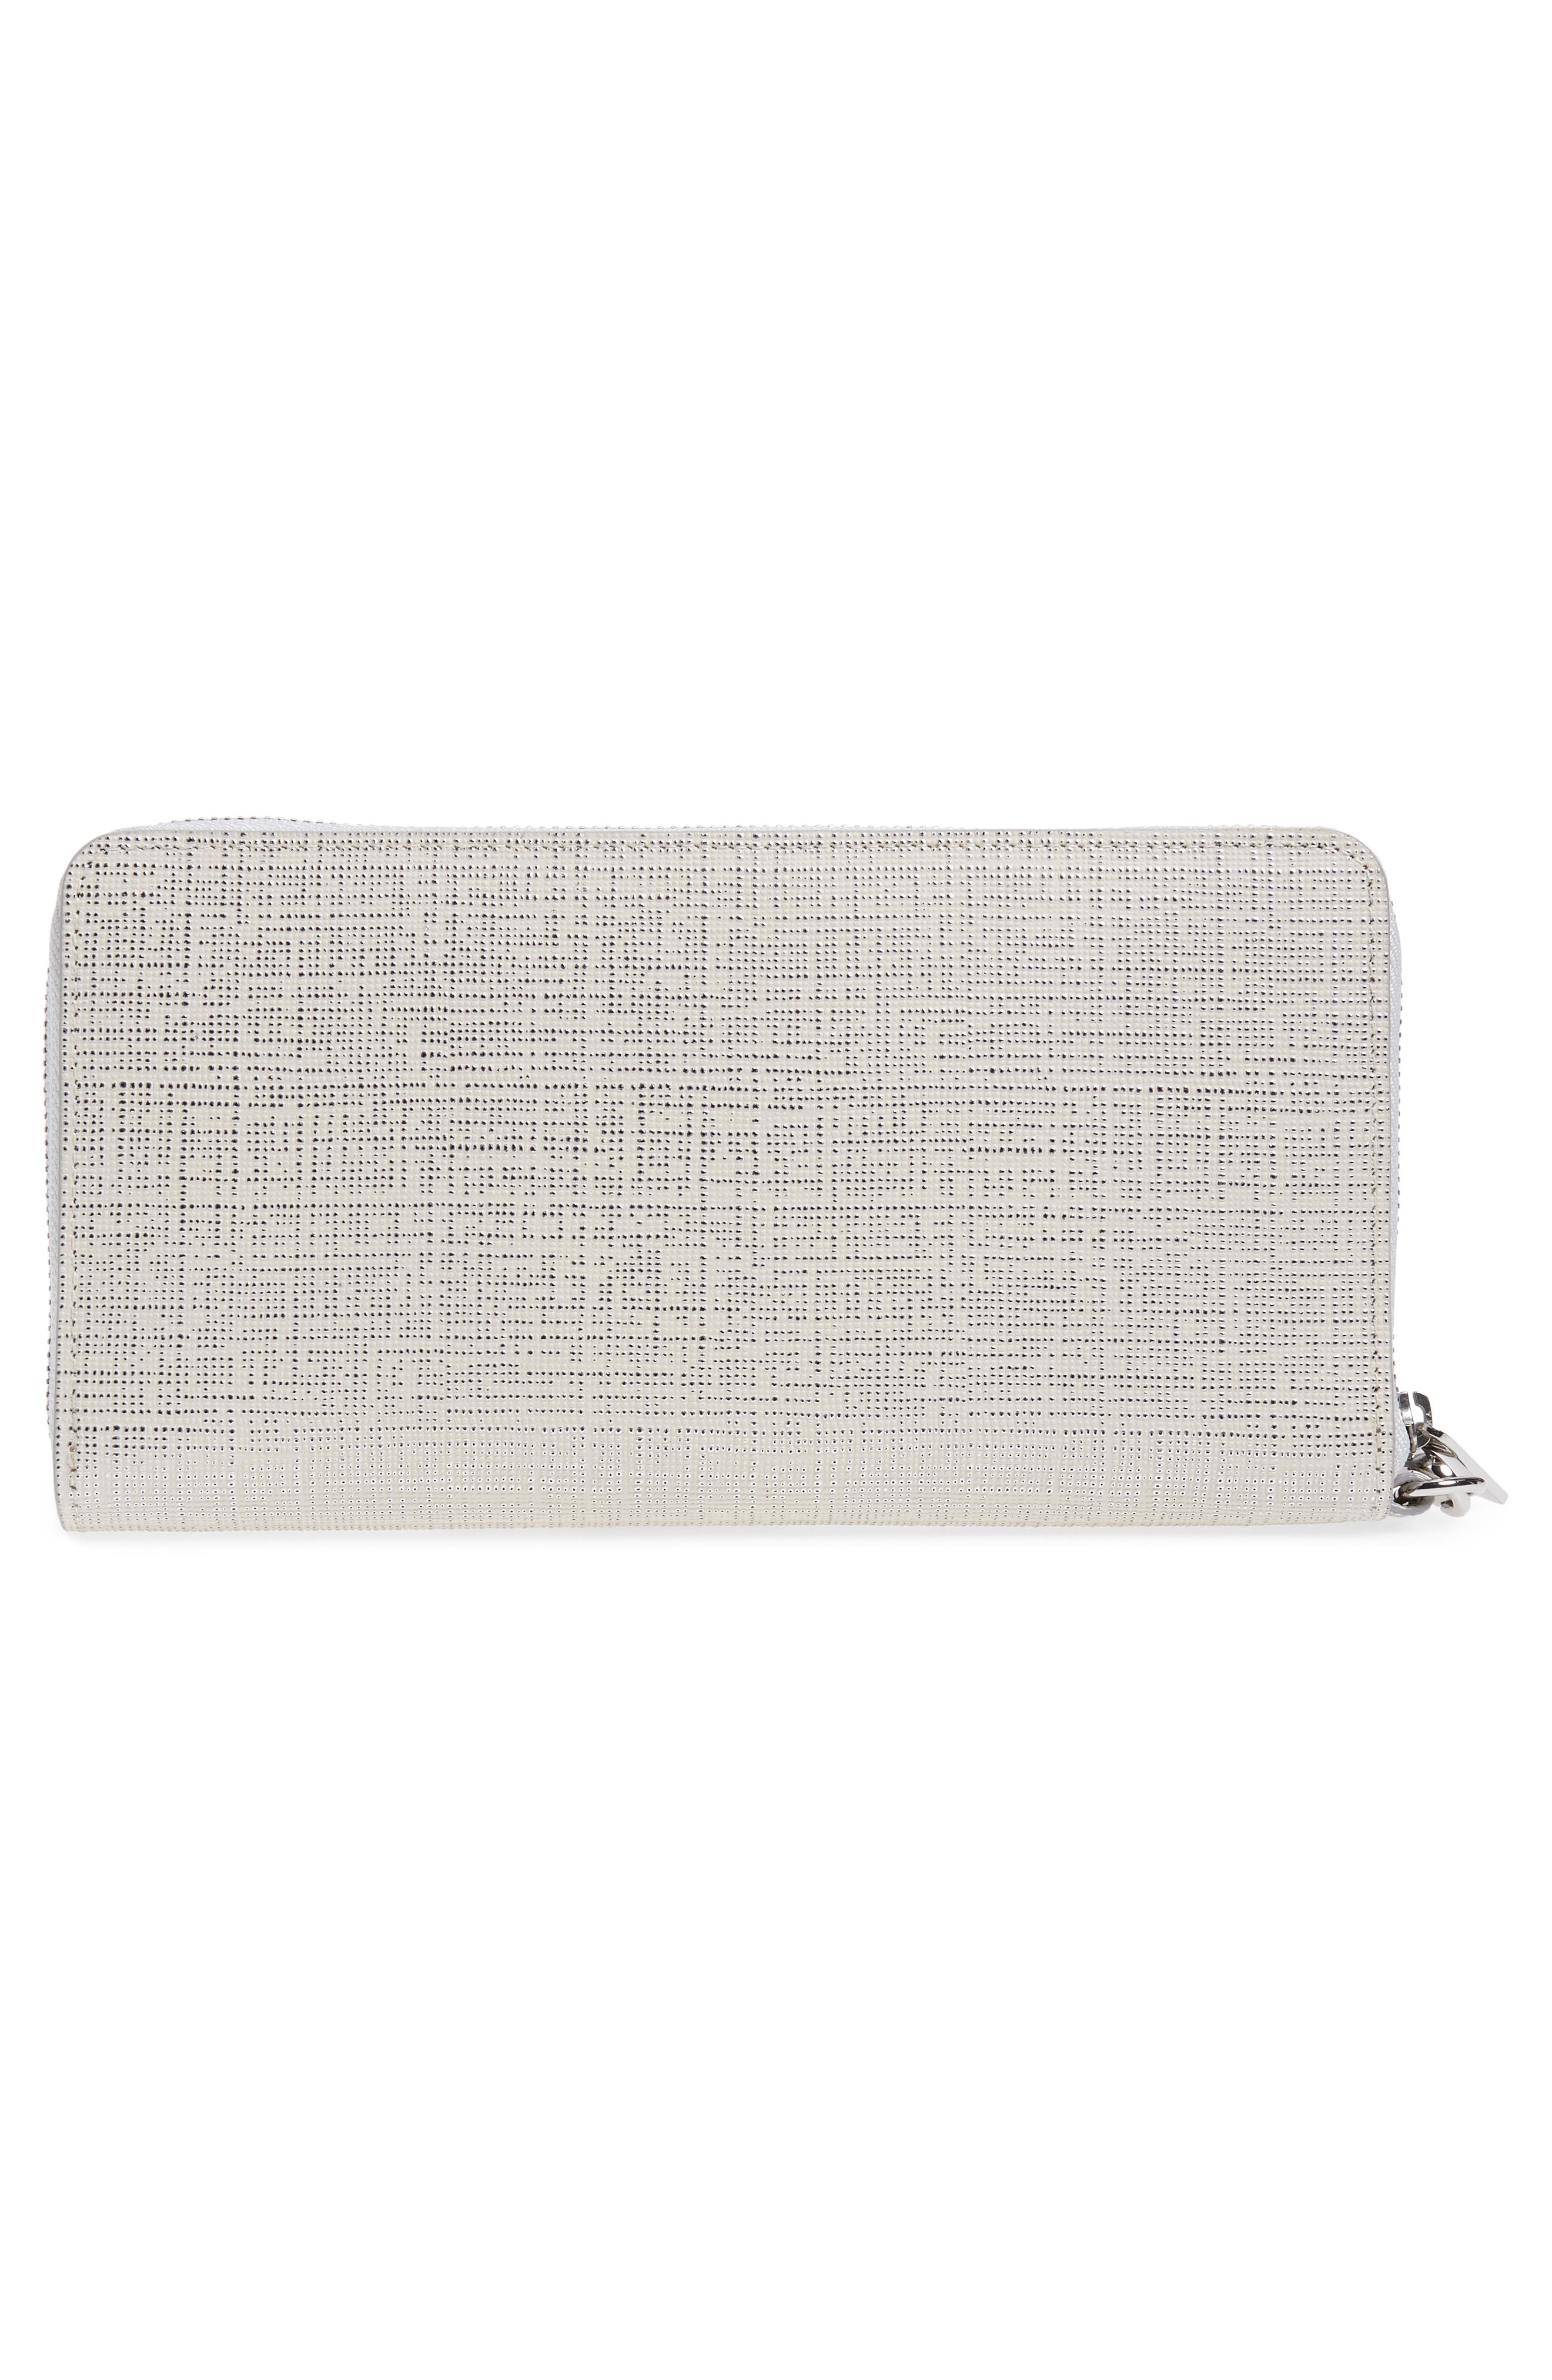 Leather Zip Around Wallet,                             Alternate thumbnail 5, color,                             White Silver